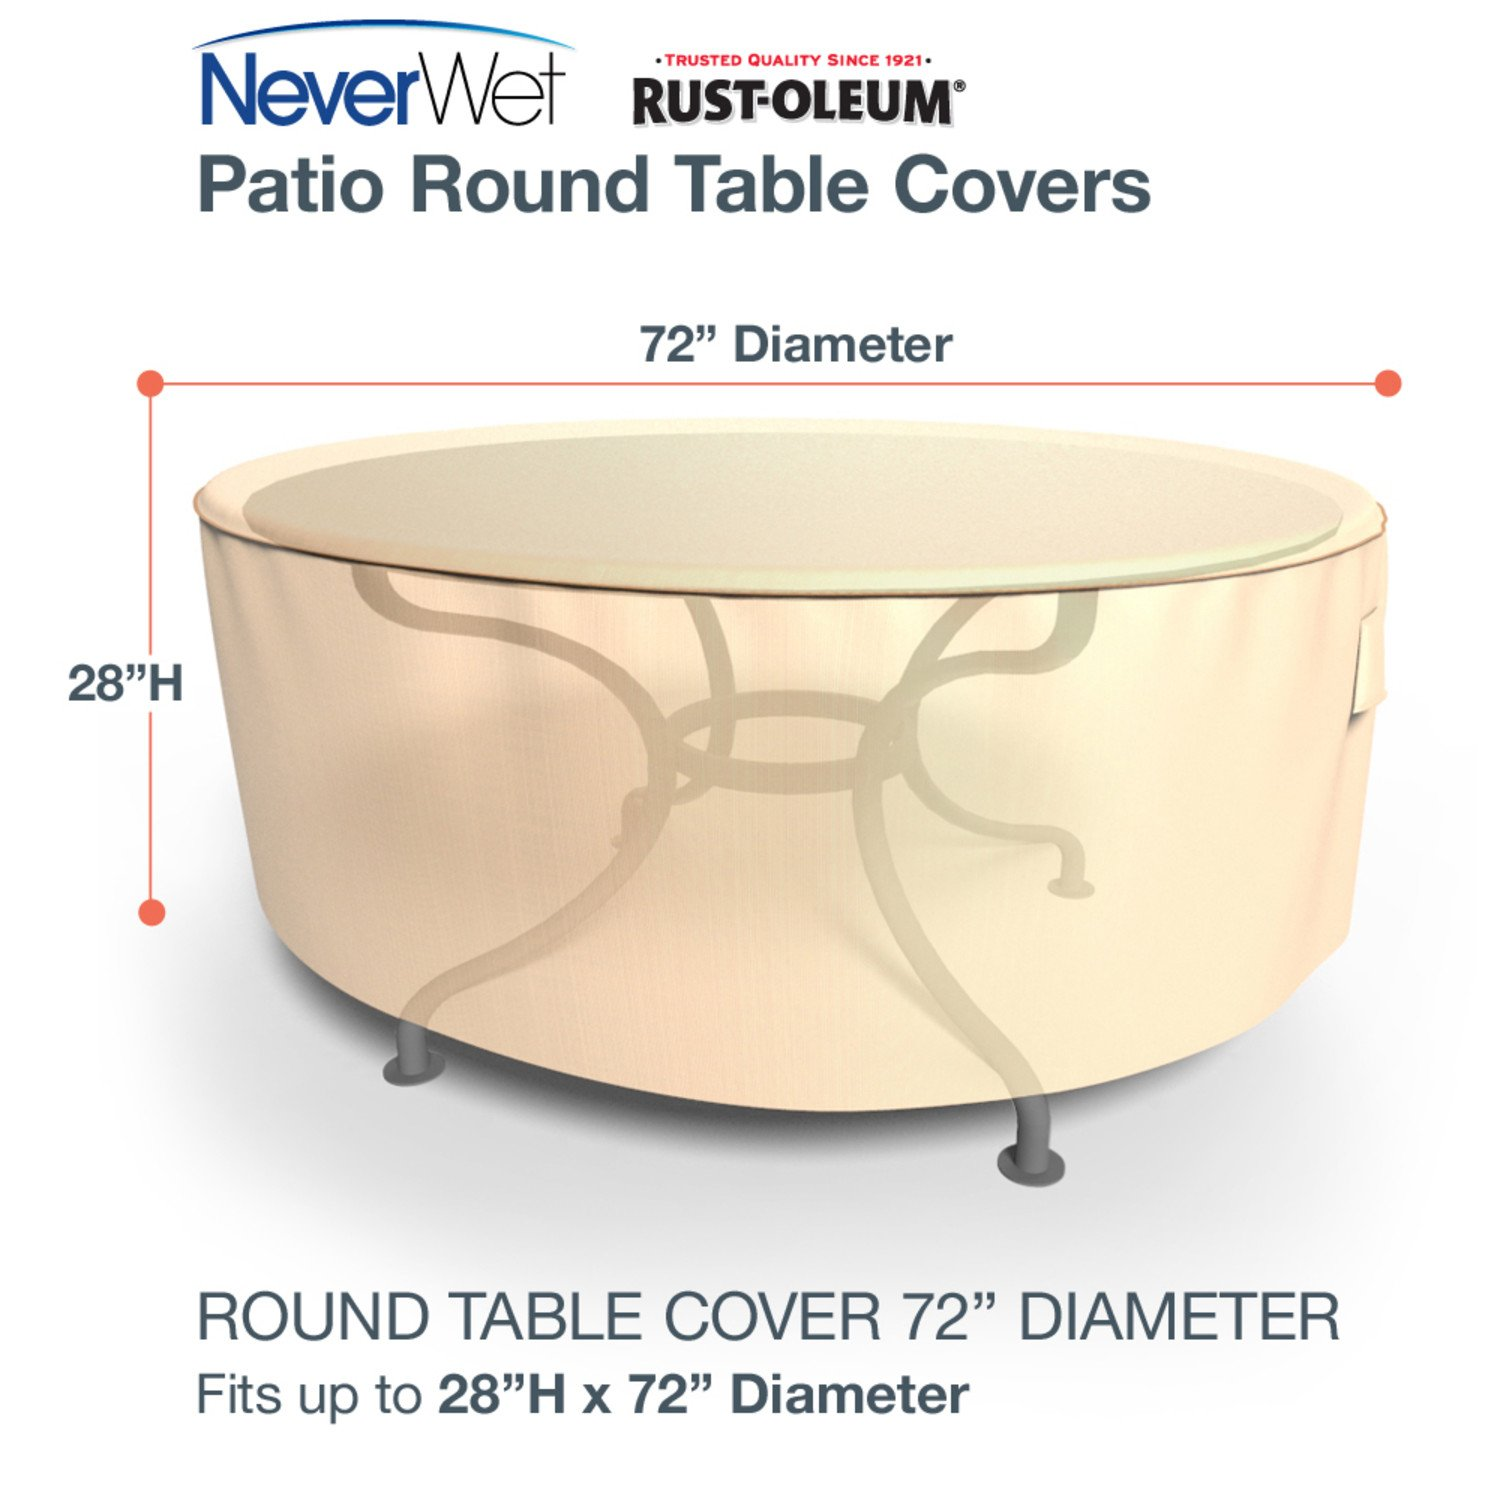 Budge p5a07tnnw1 round table extra large rust oleum neverwet patio furniture cover